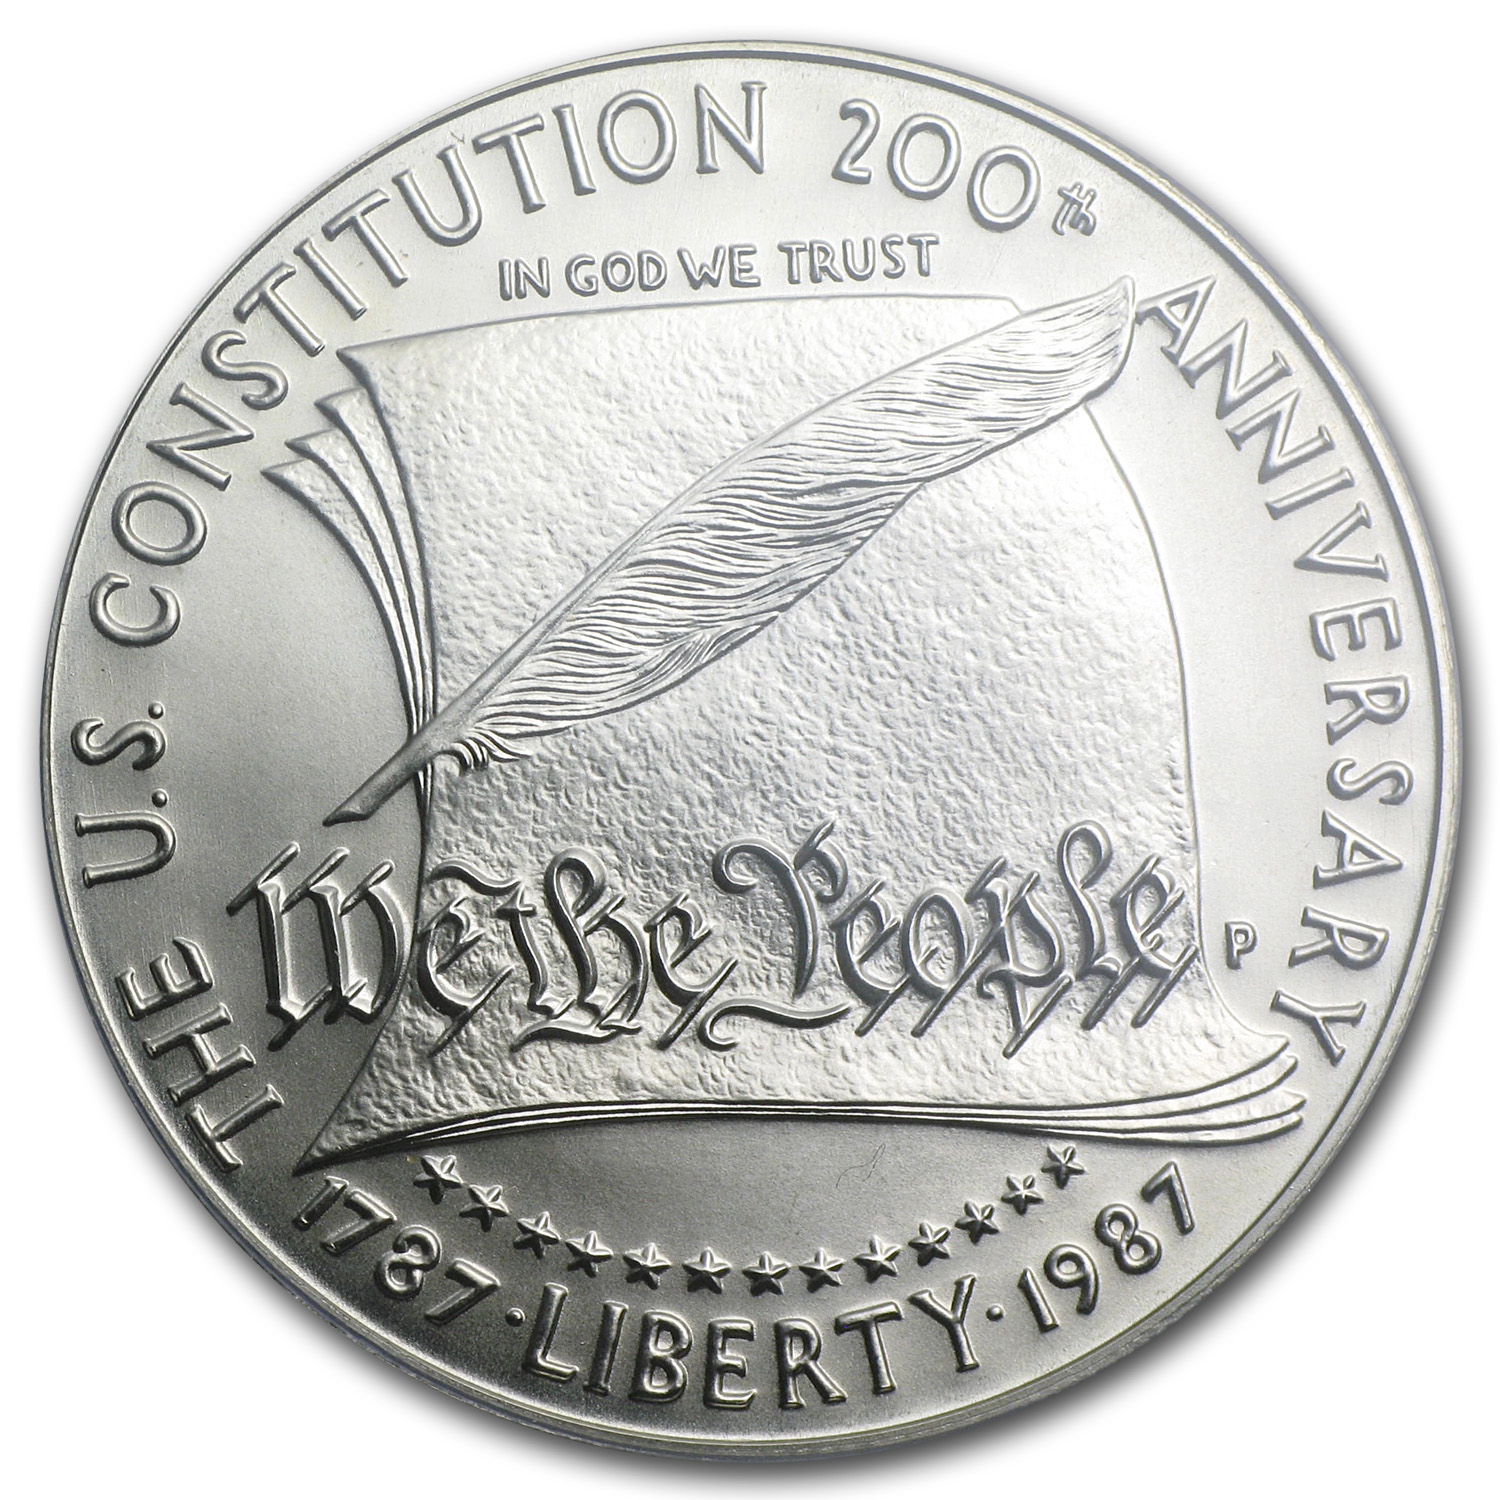 1987-P Constitution $1 Silver Commemorative - MS-70 PCGS